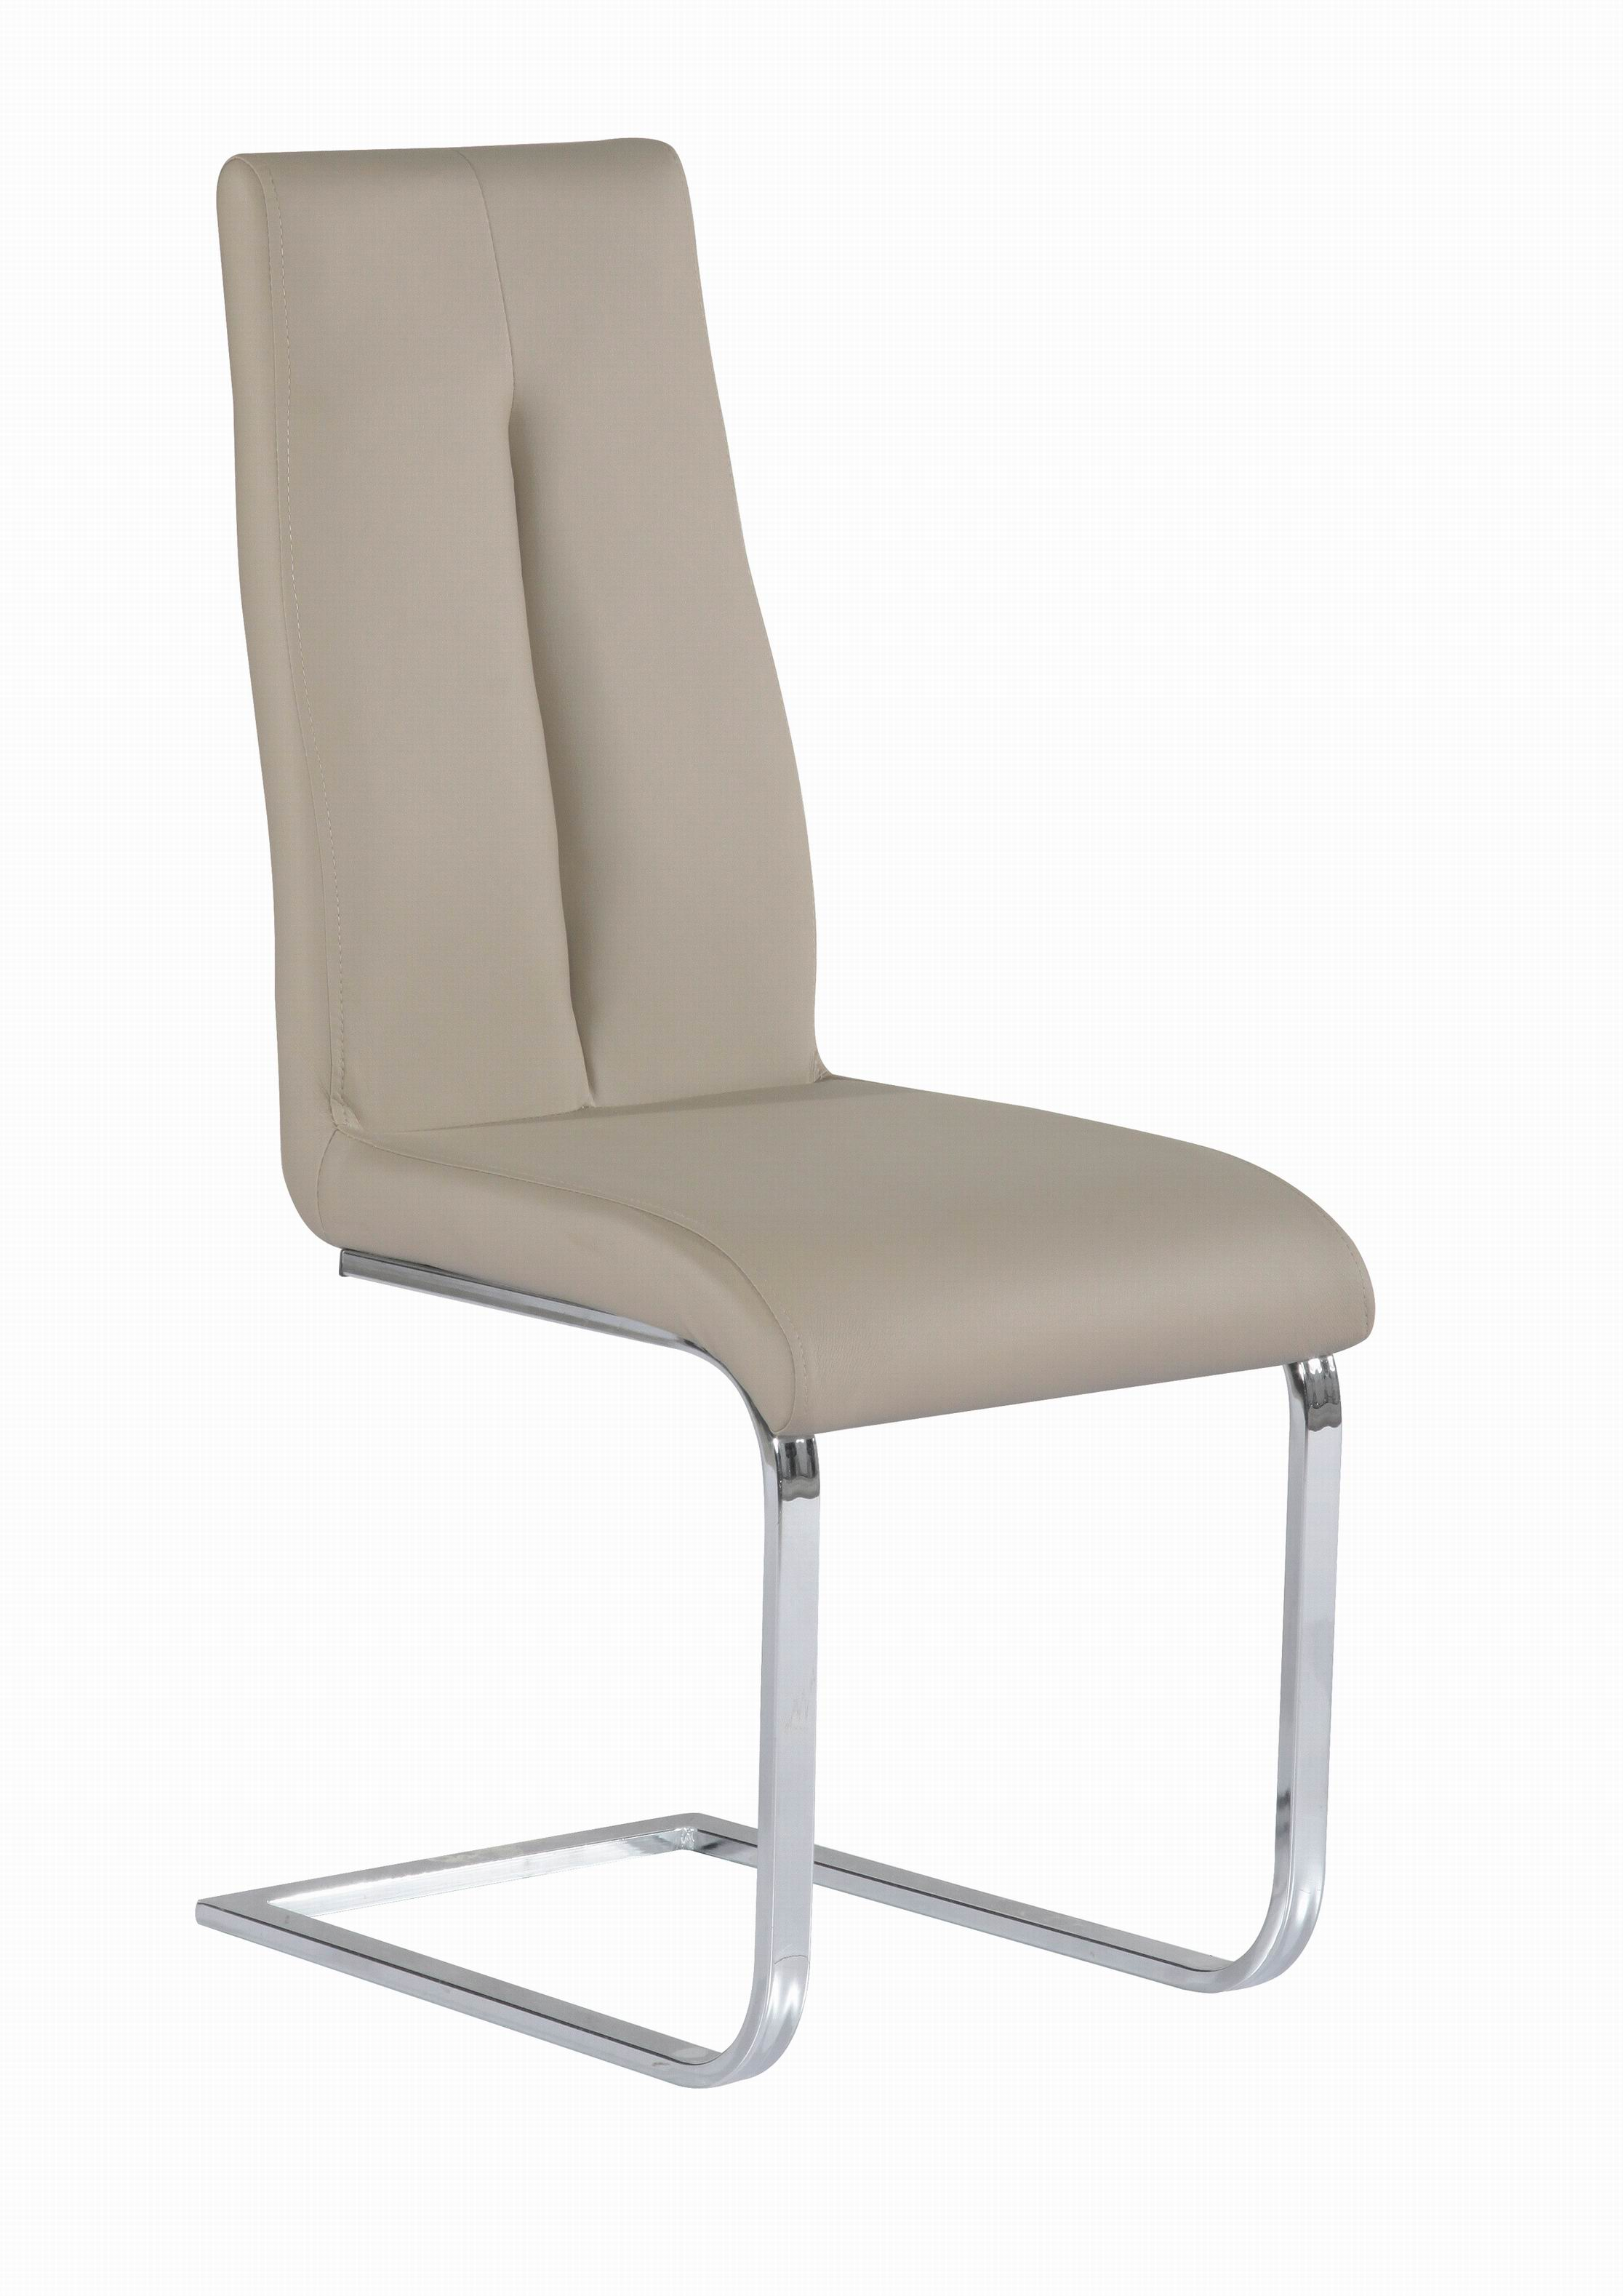 Chairs Comfortable Comfortable Taupe Upholstered Side Chair With Chrome Frame